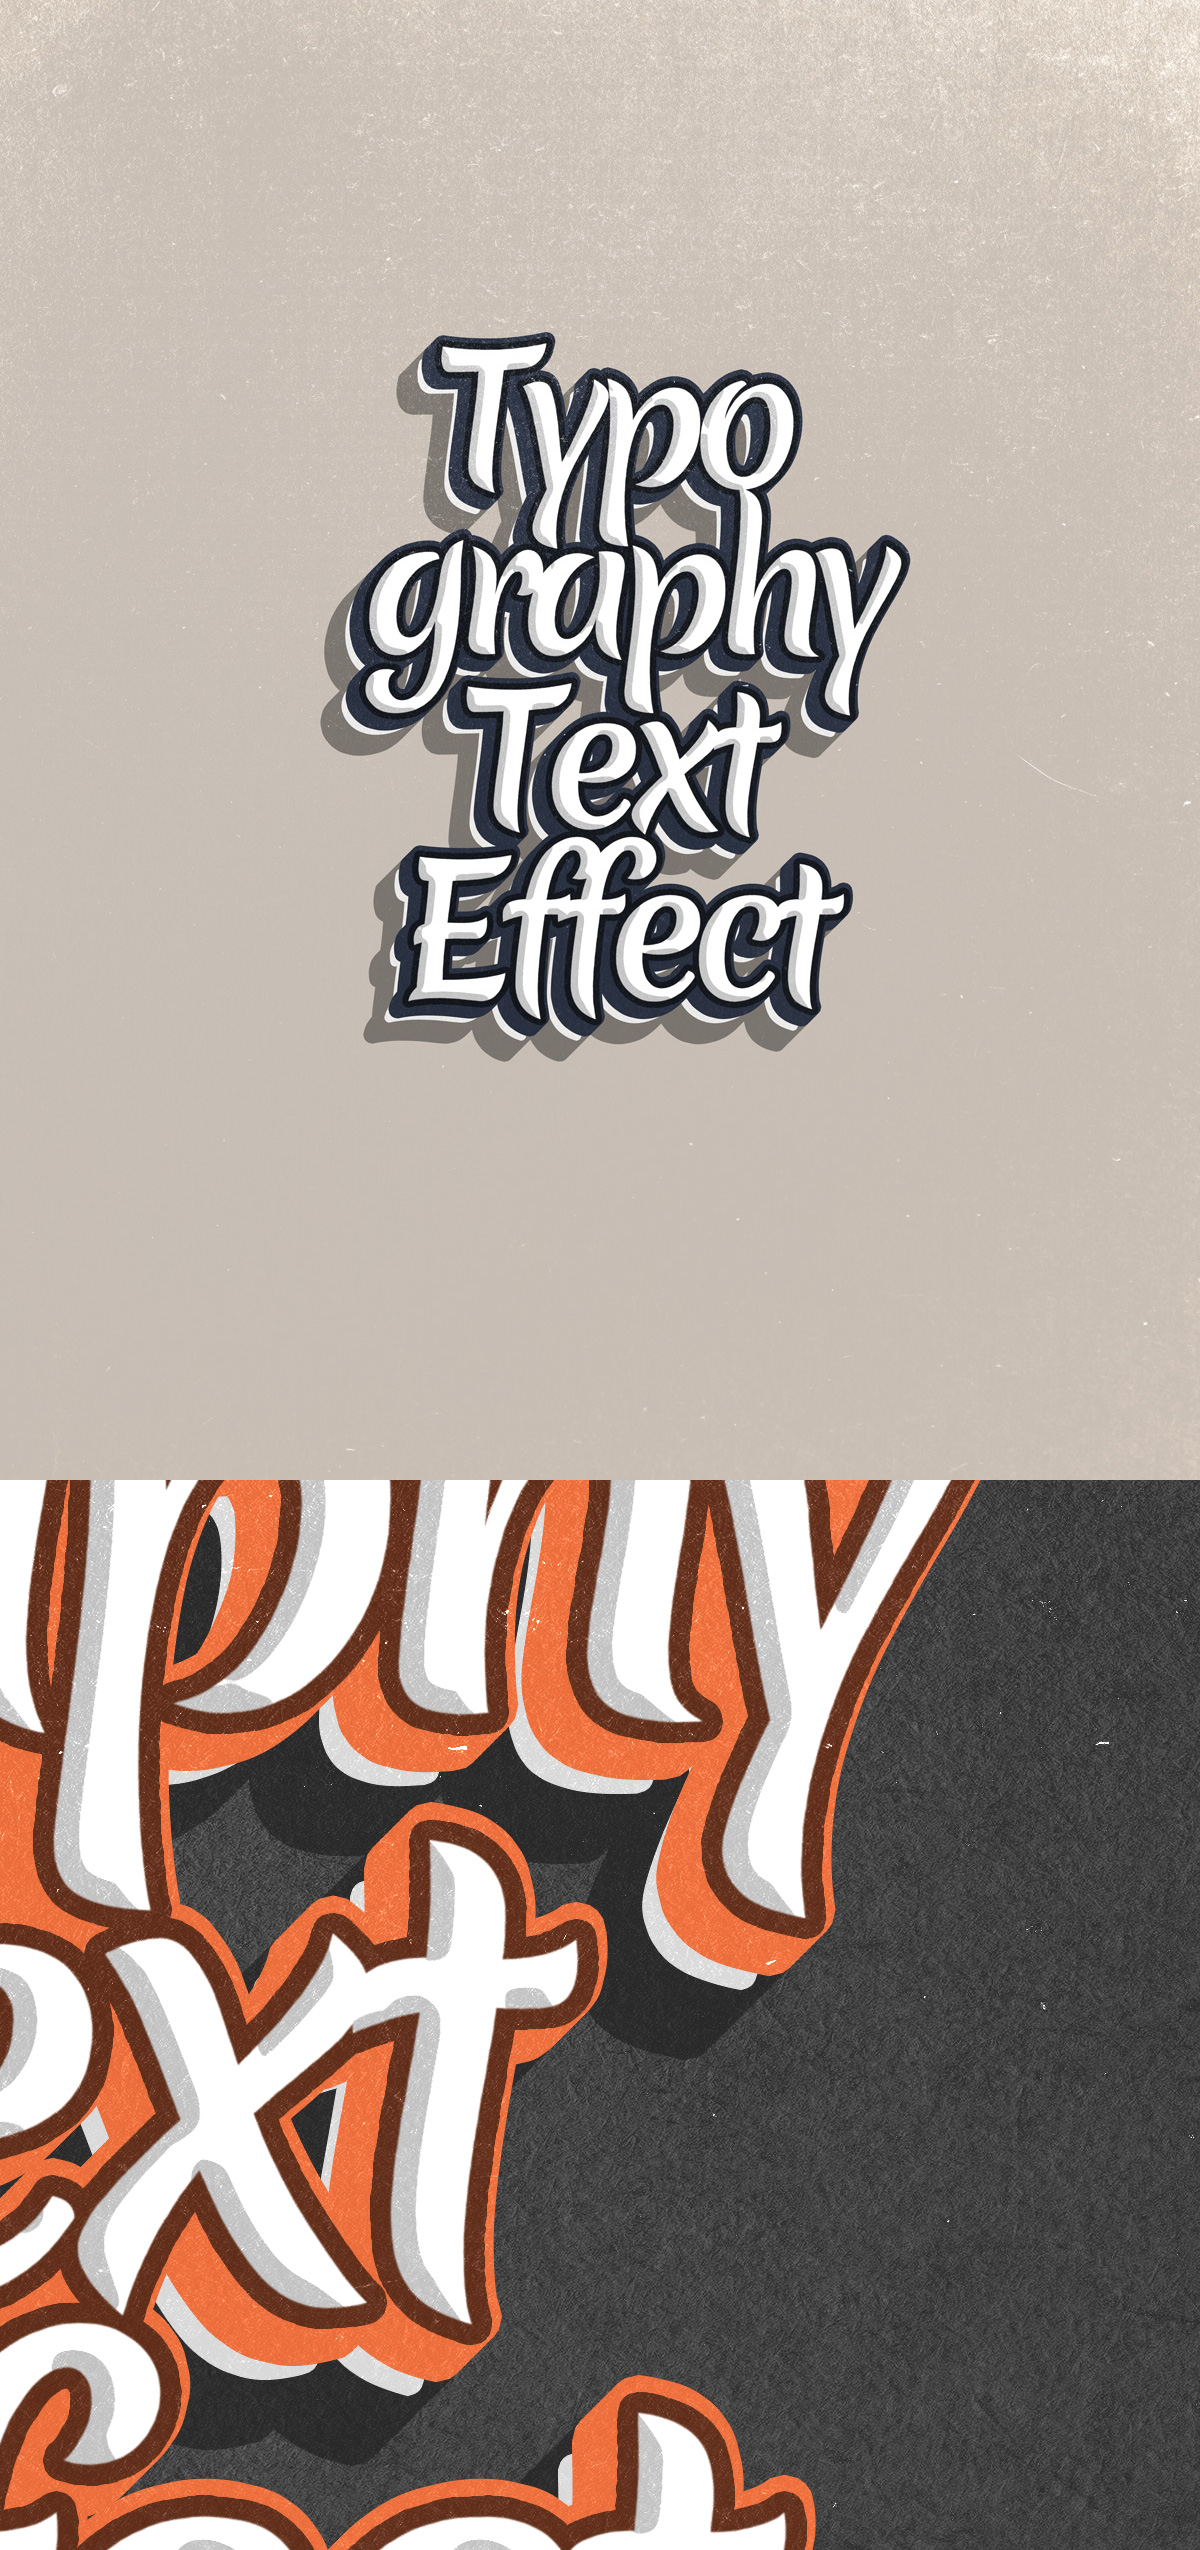 Hand-drawn Typographic Text Effect PSD